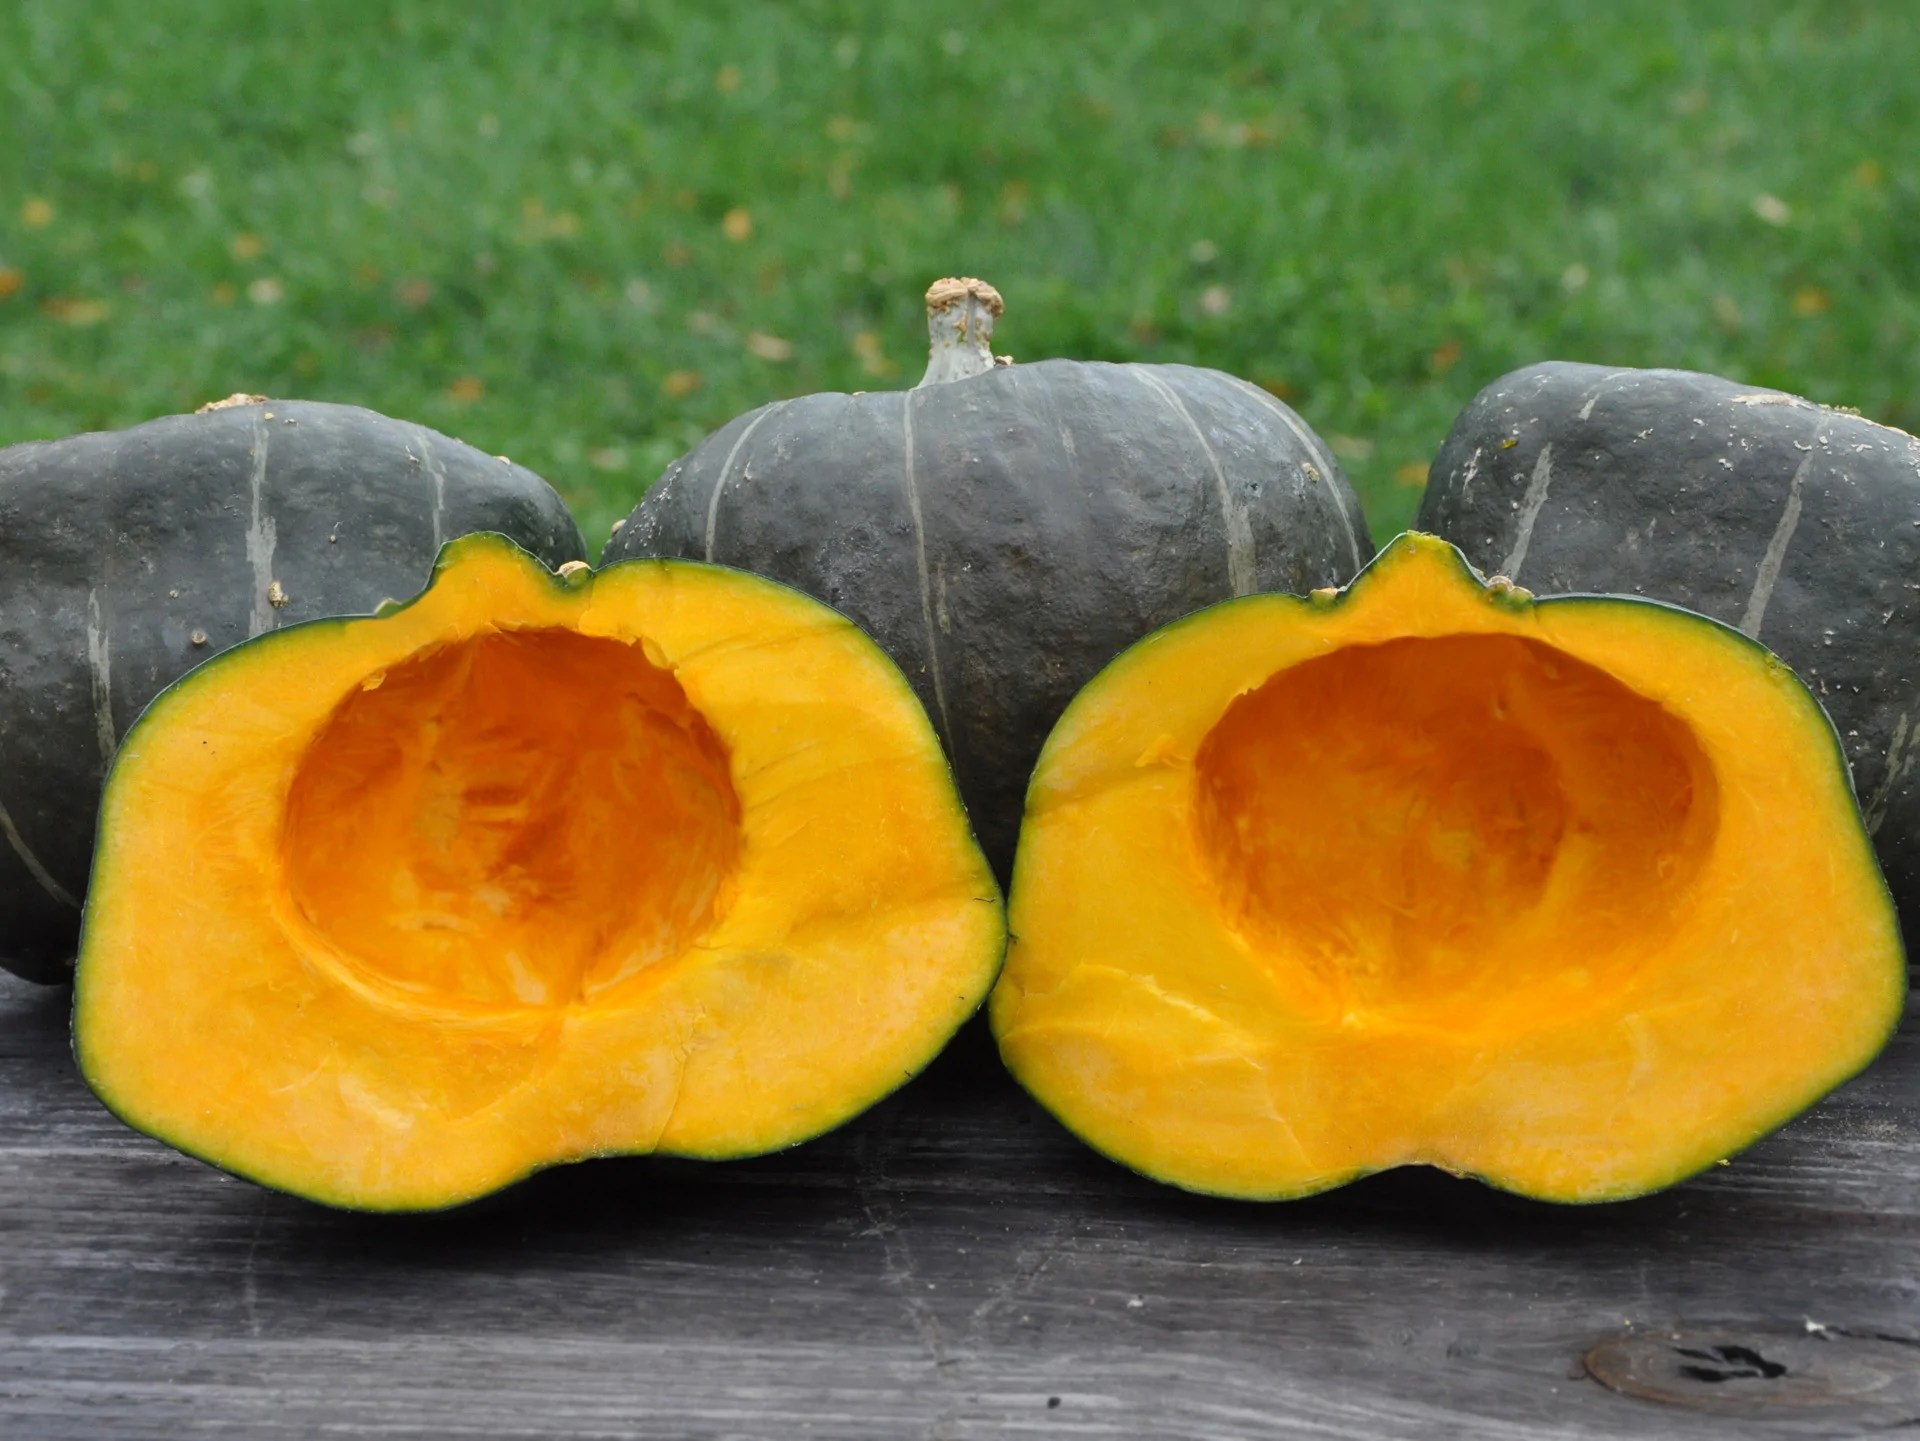 Irresistible Burgess Buttercup Winter Squash Burgess Buttercup Winter Squash Seeds Burgess Seed Plant Co Promo Code Plant Company Phone Number Burgess Seed houzz-03 Burgess Seed And Plant